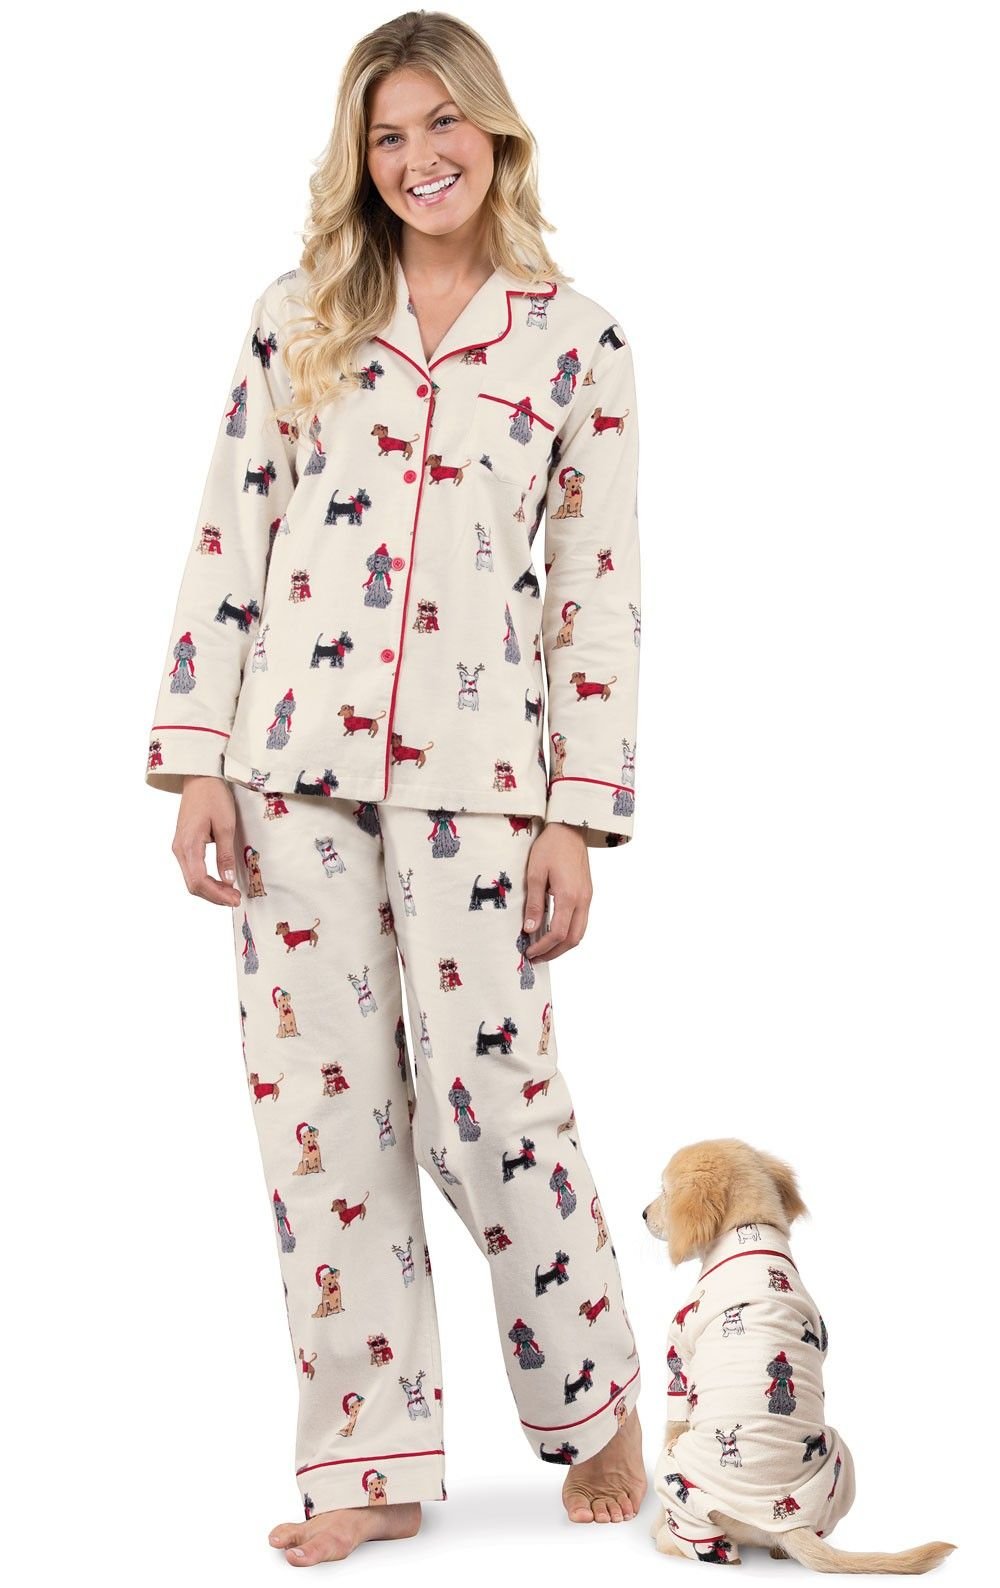 Christmas Dog Print Flannel Pajamas for Dog & Owner in